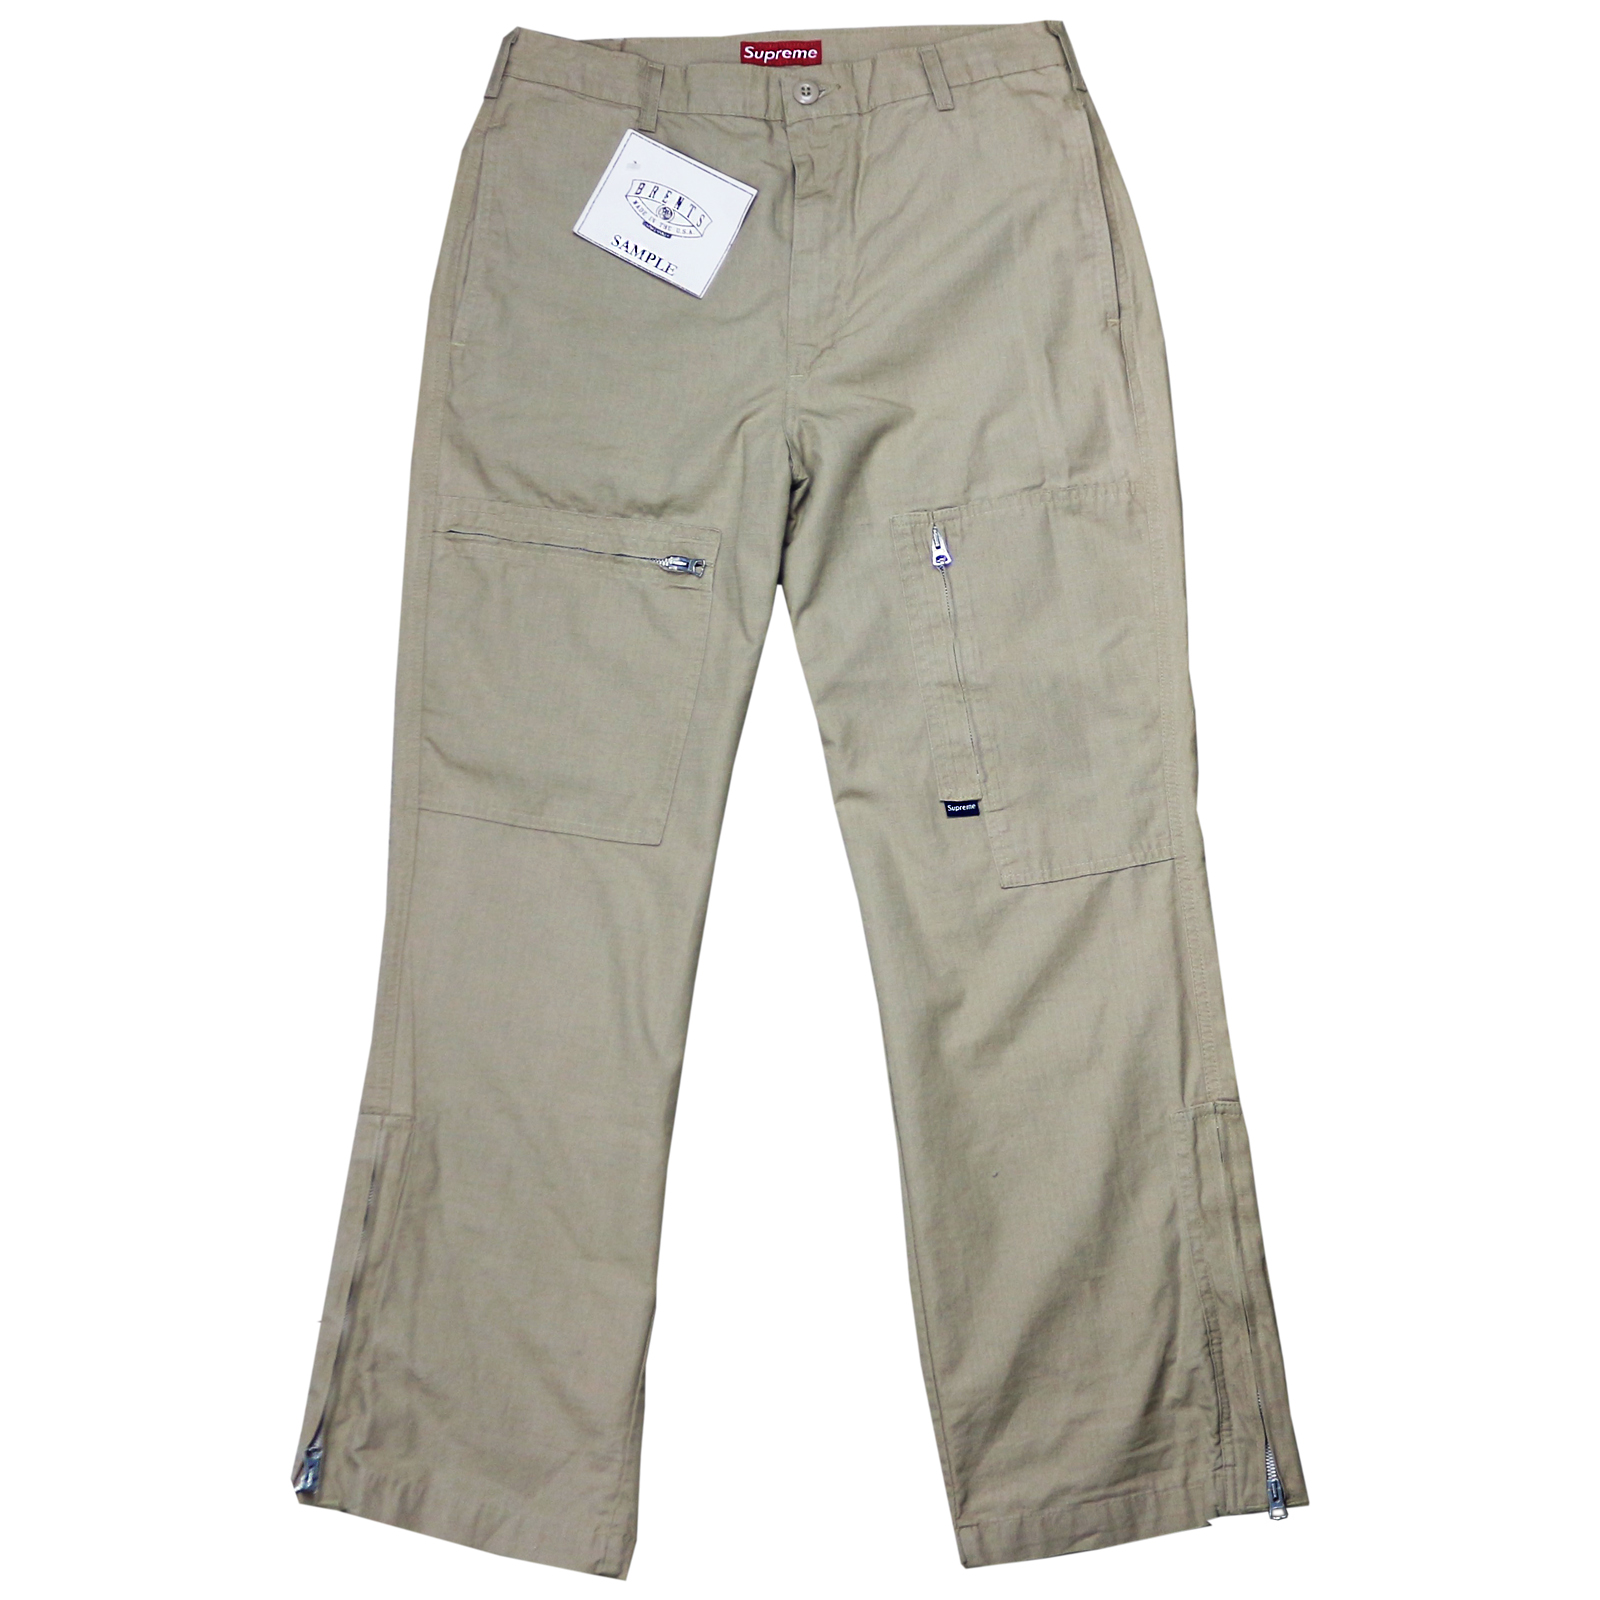 22.SUP_ZipWorkpant_FRONT